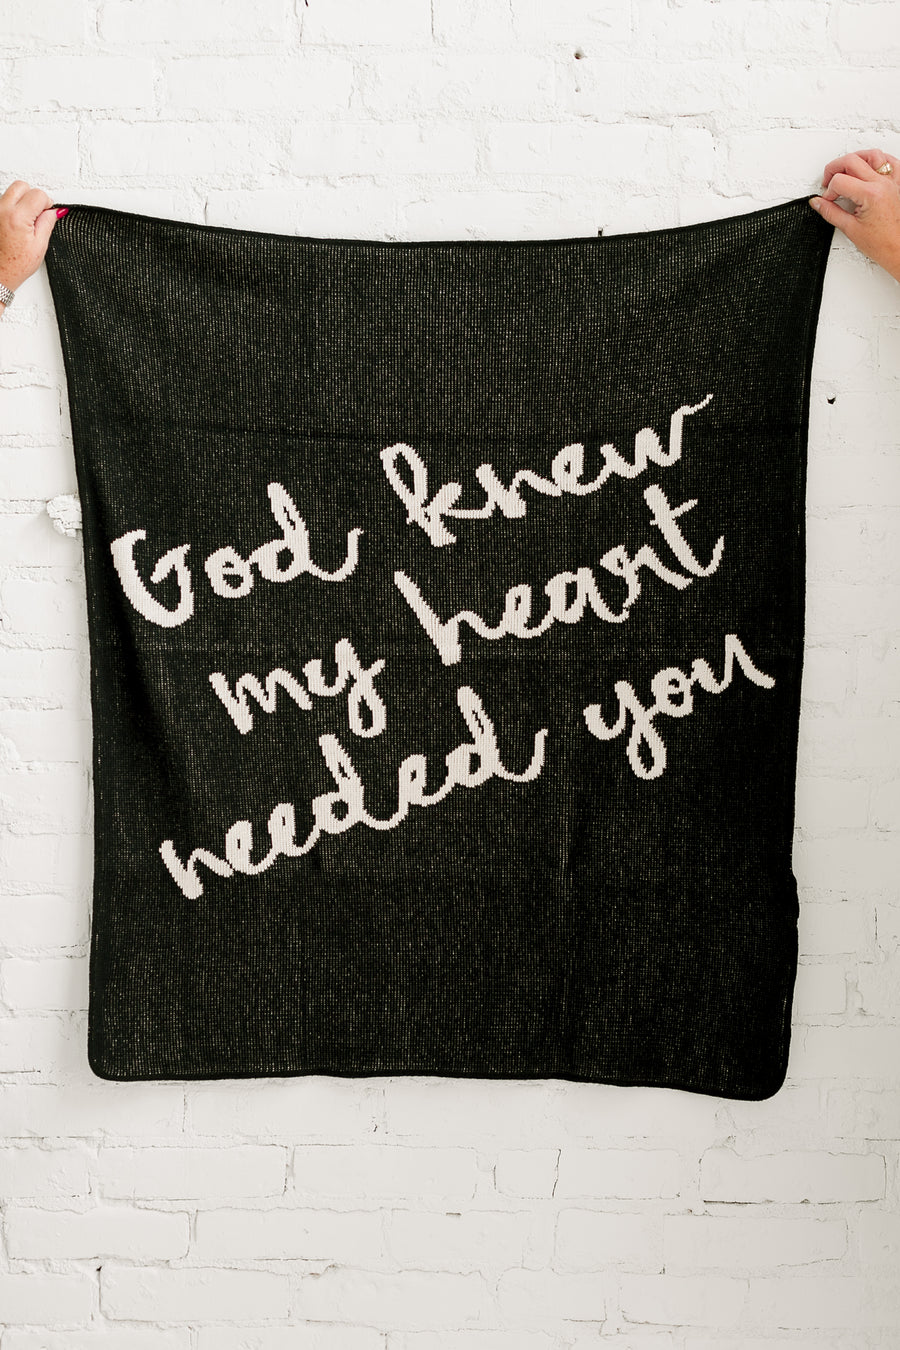 *NEW* Made in the USA | Recycled Cotton Blend  God knew my heart needed you Throw Blanket | Black